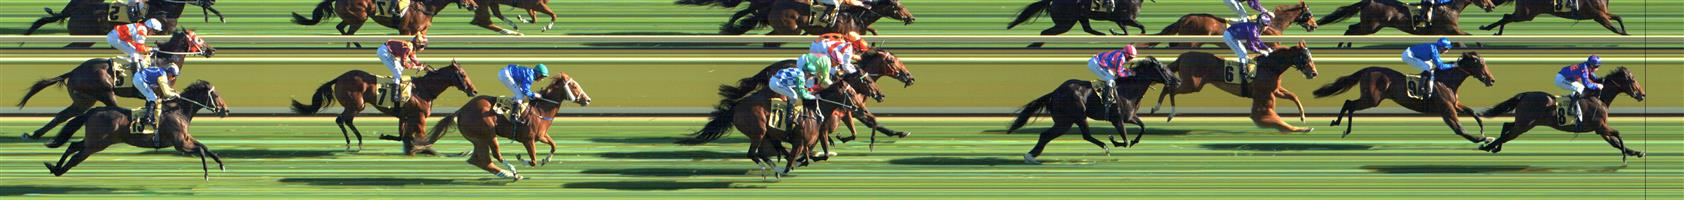 SWAN HILL Race 5 No. 1 Three Legs In @ $8.50   Result : Unplaced at SP $8.00. Settled in around fourth but when it peeled out to make its run home it was just one paced and finished a little better than midfield. Outcome –0.67 Units